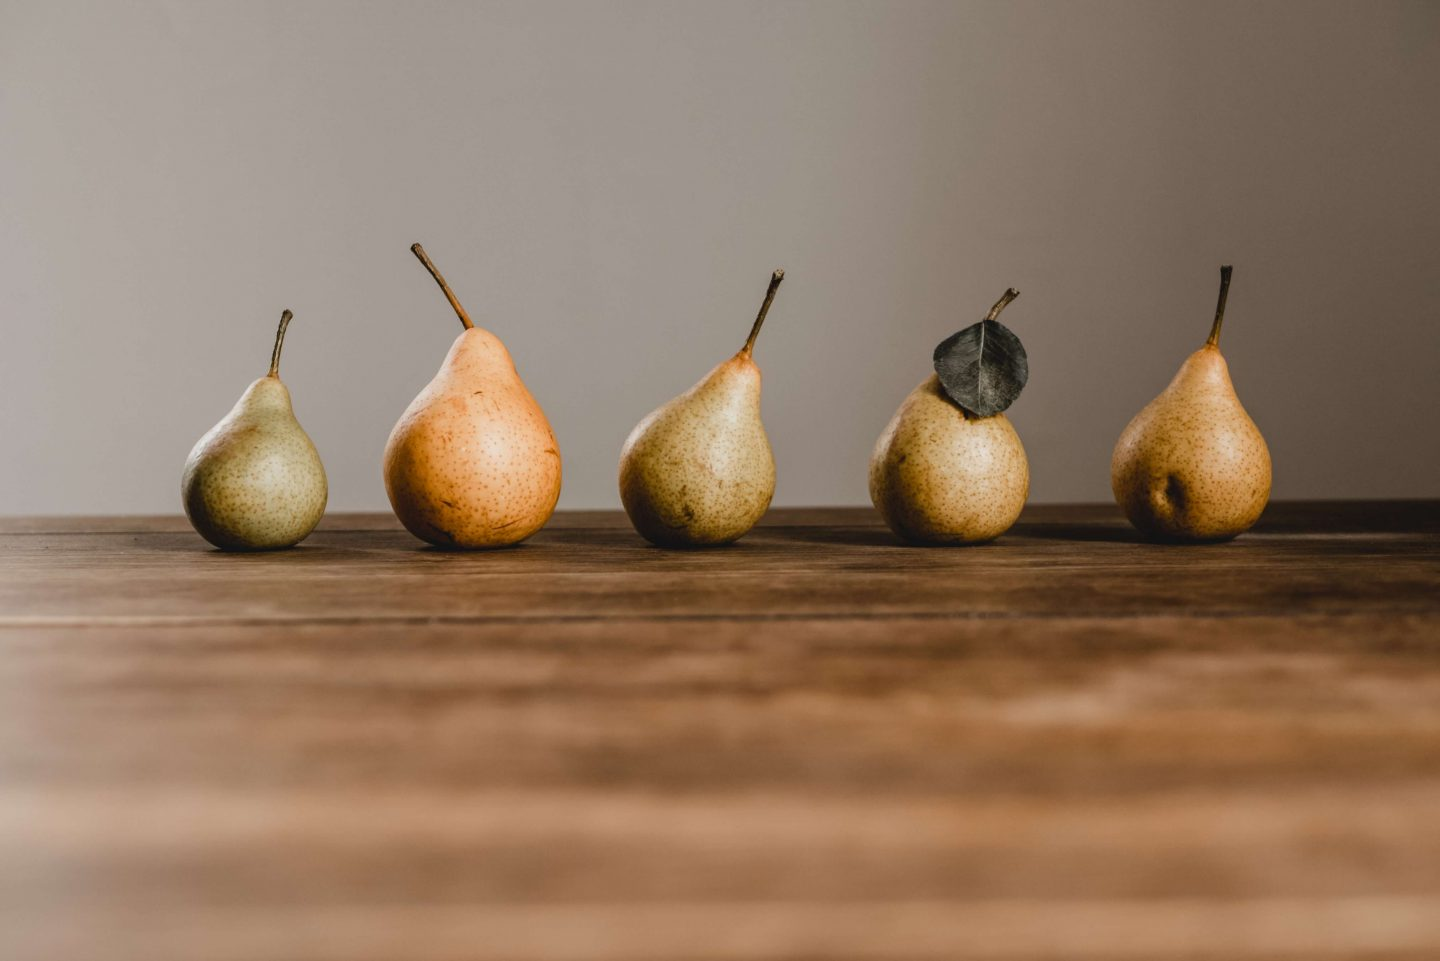 Difficult food and drink quiz questions - pears